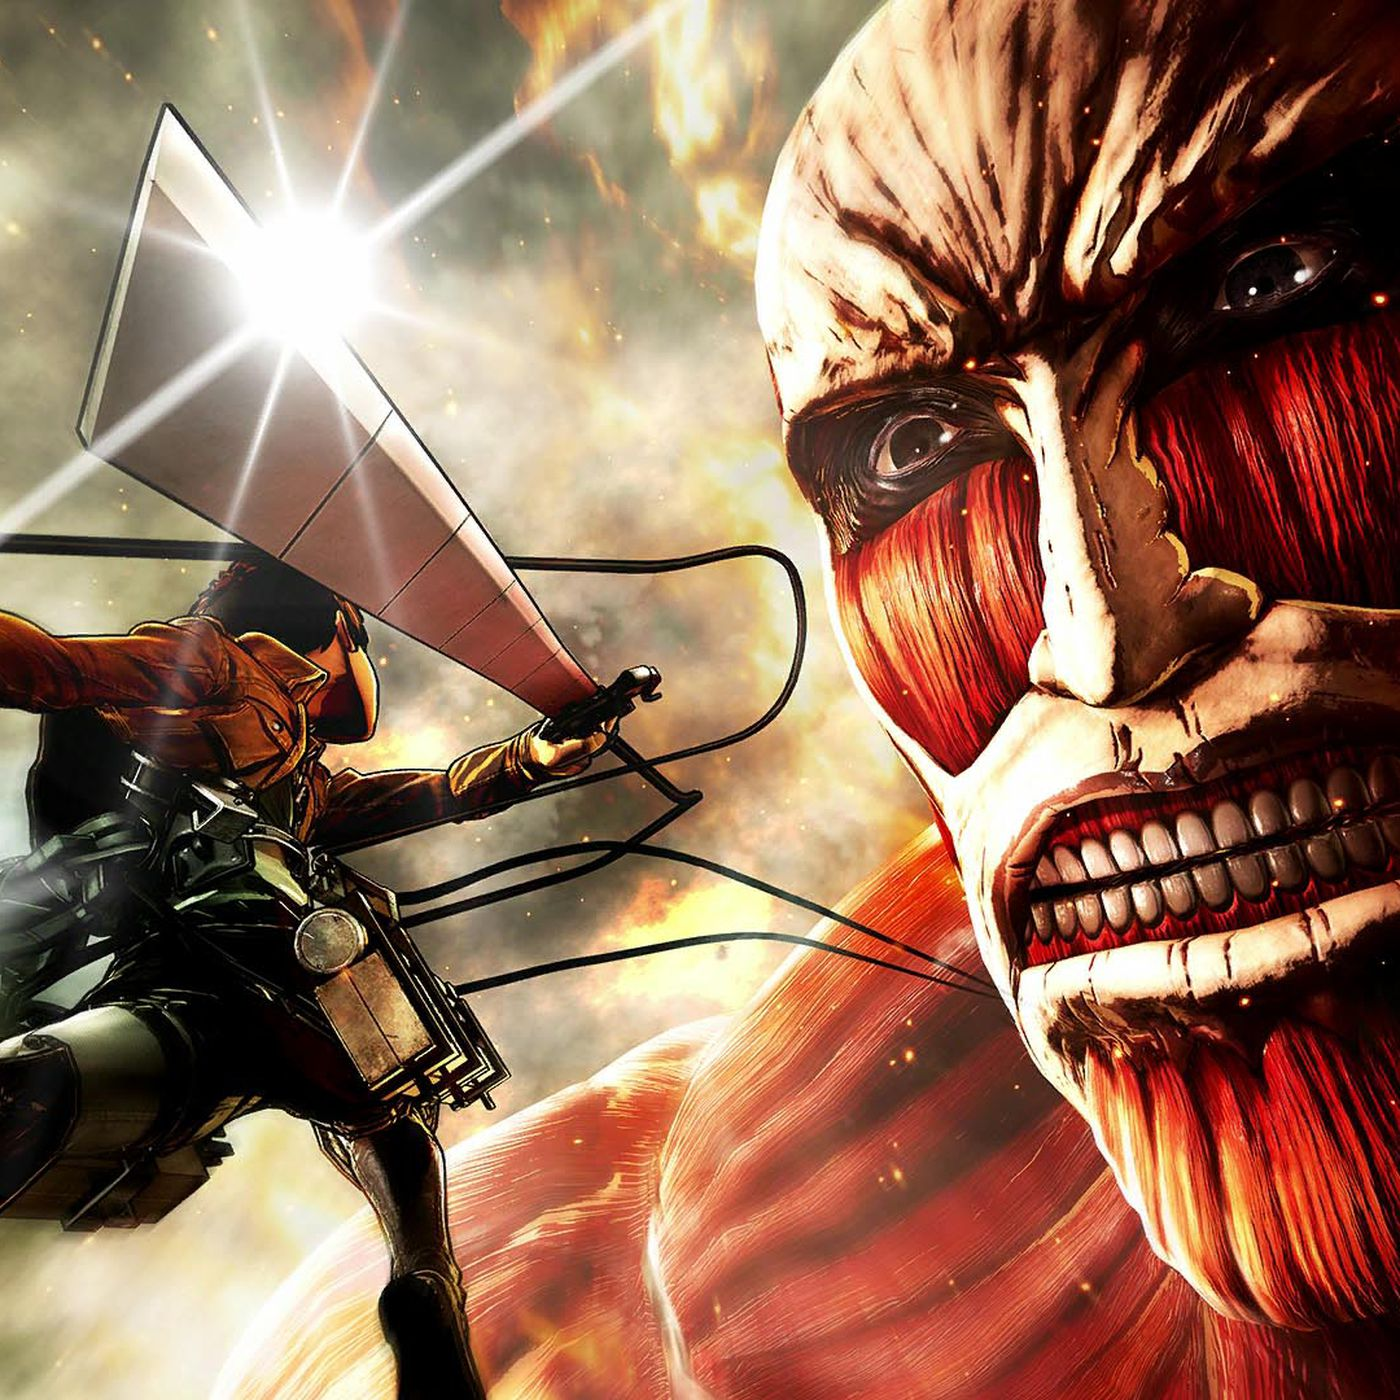 The release date for Attack on Titan Chapter 132, Spoilers, Leaks raw Scans, and other major updates.